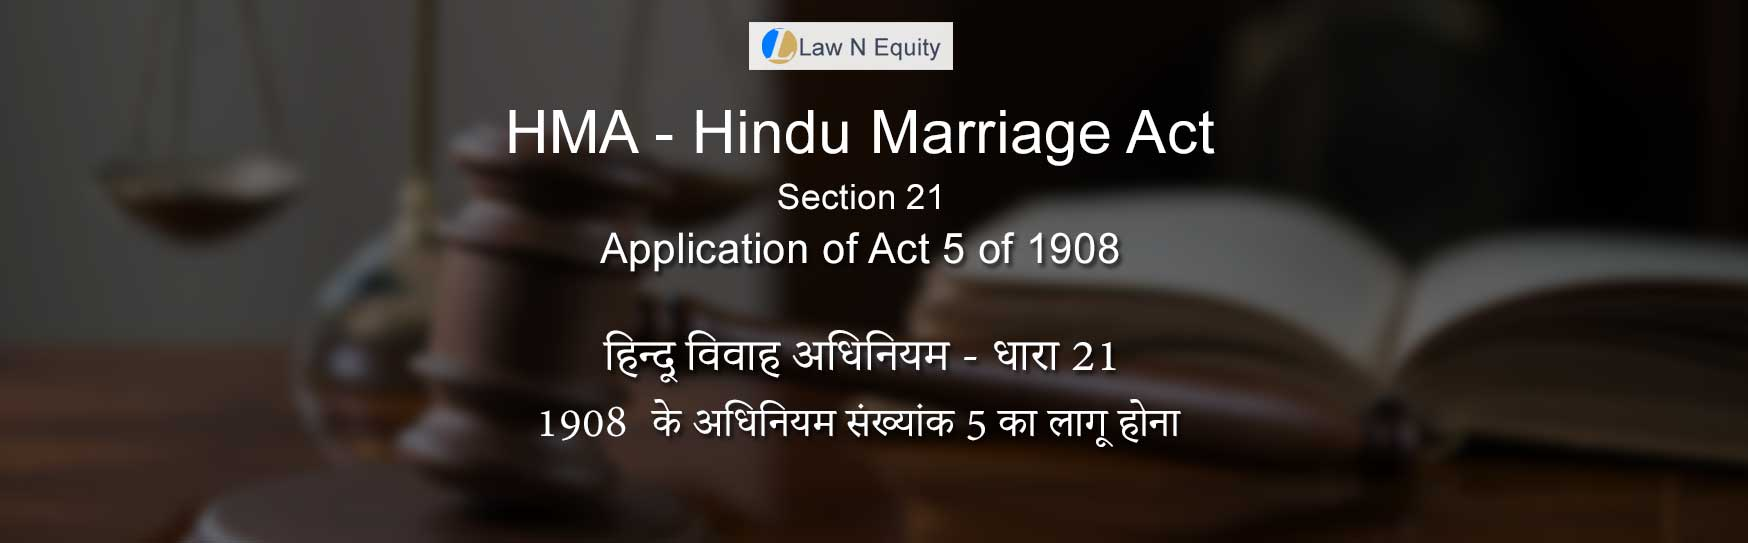 Hindu Marriage Act(HMA) Section 21